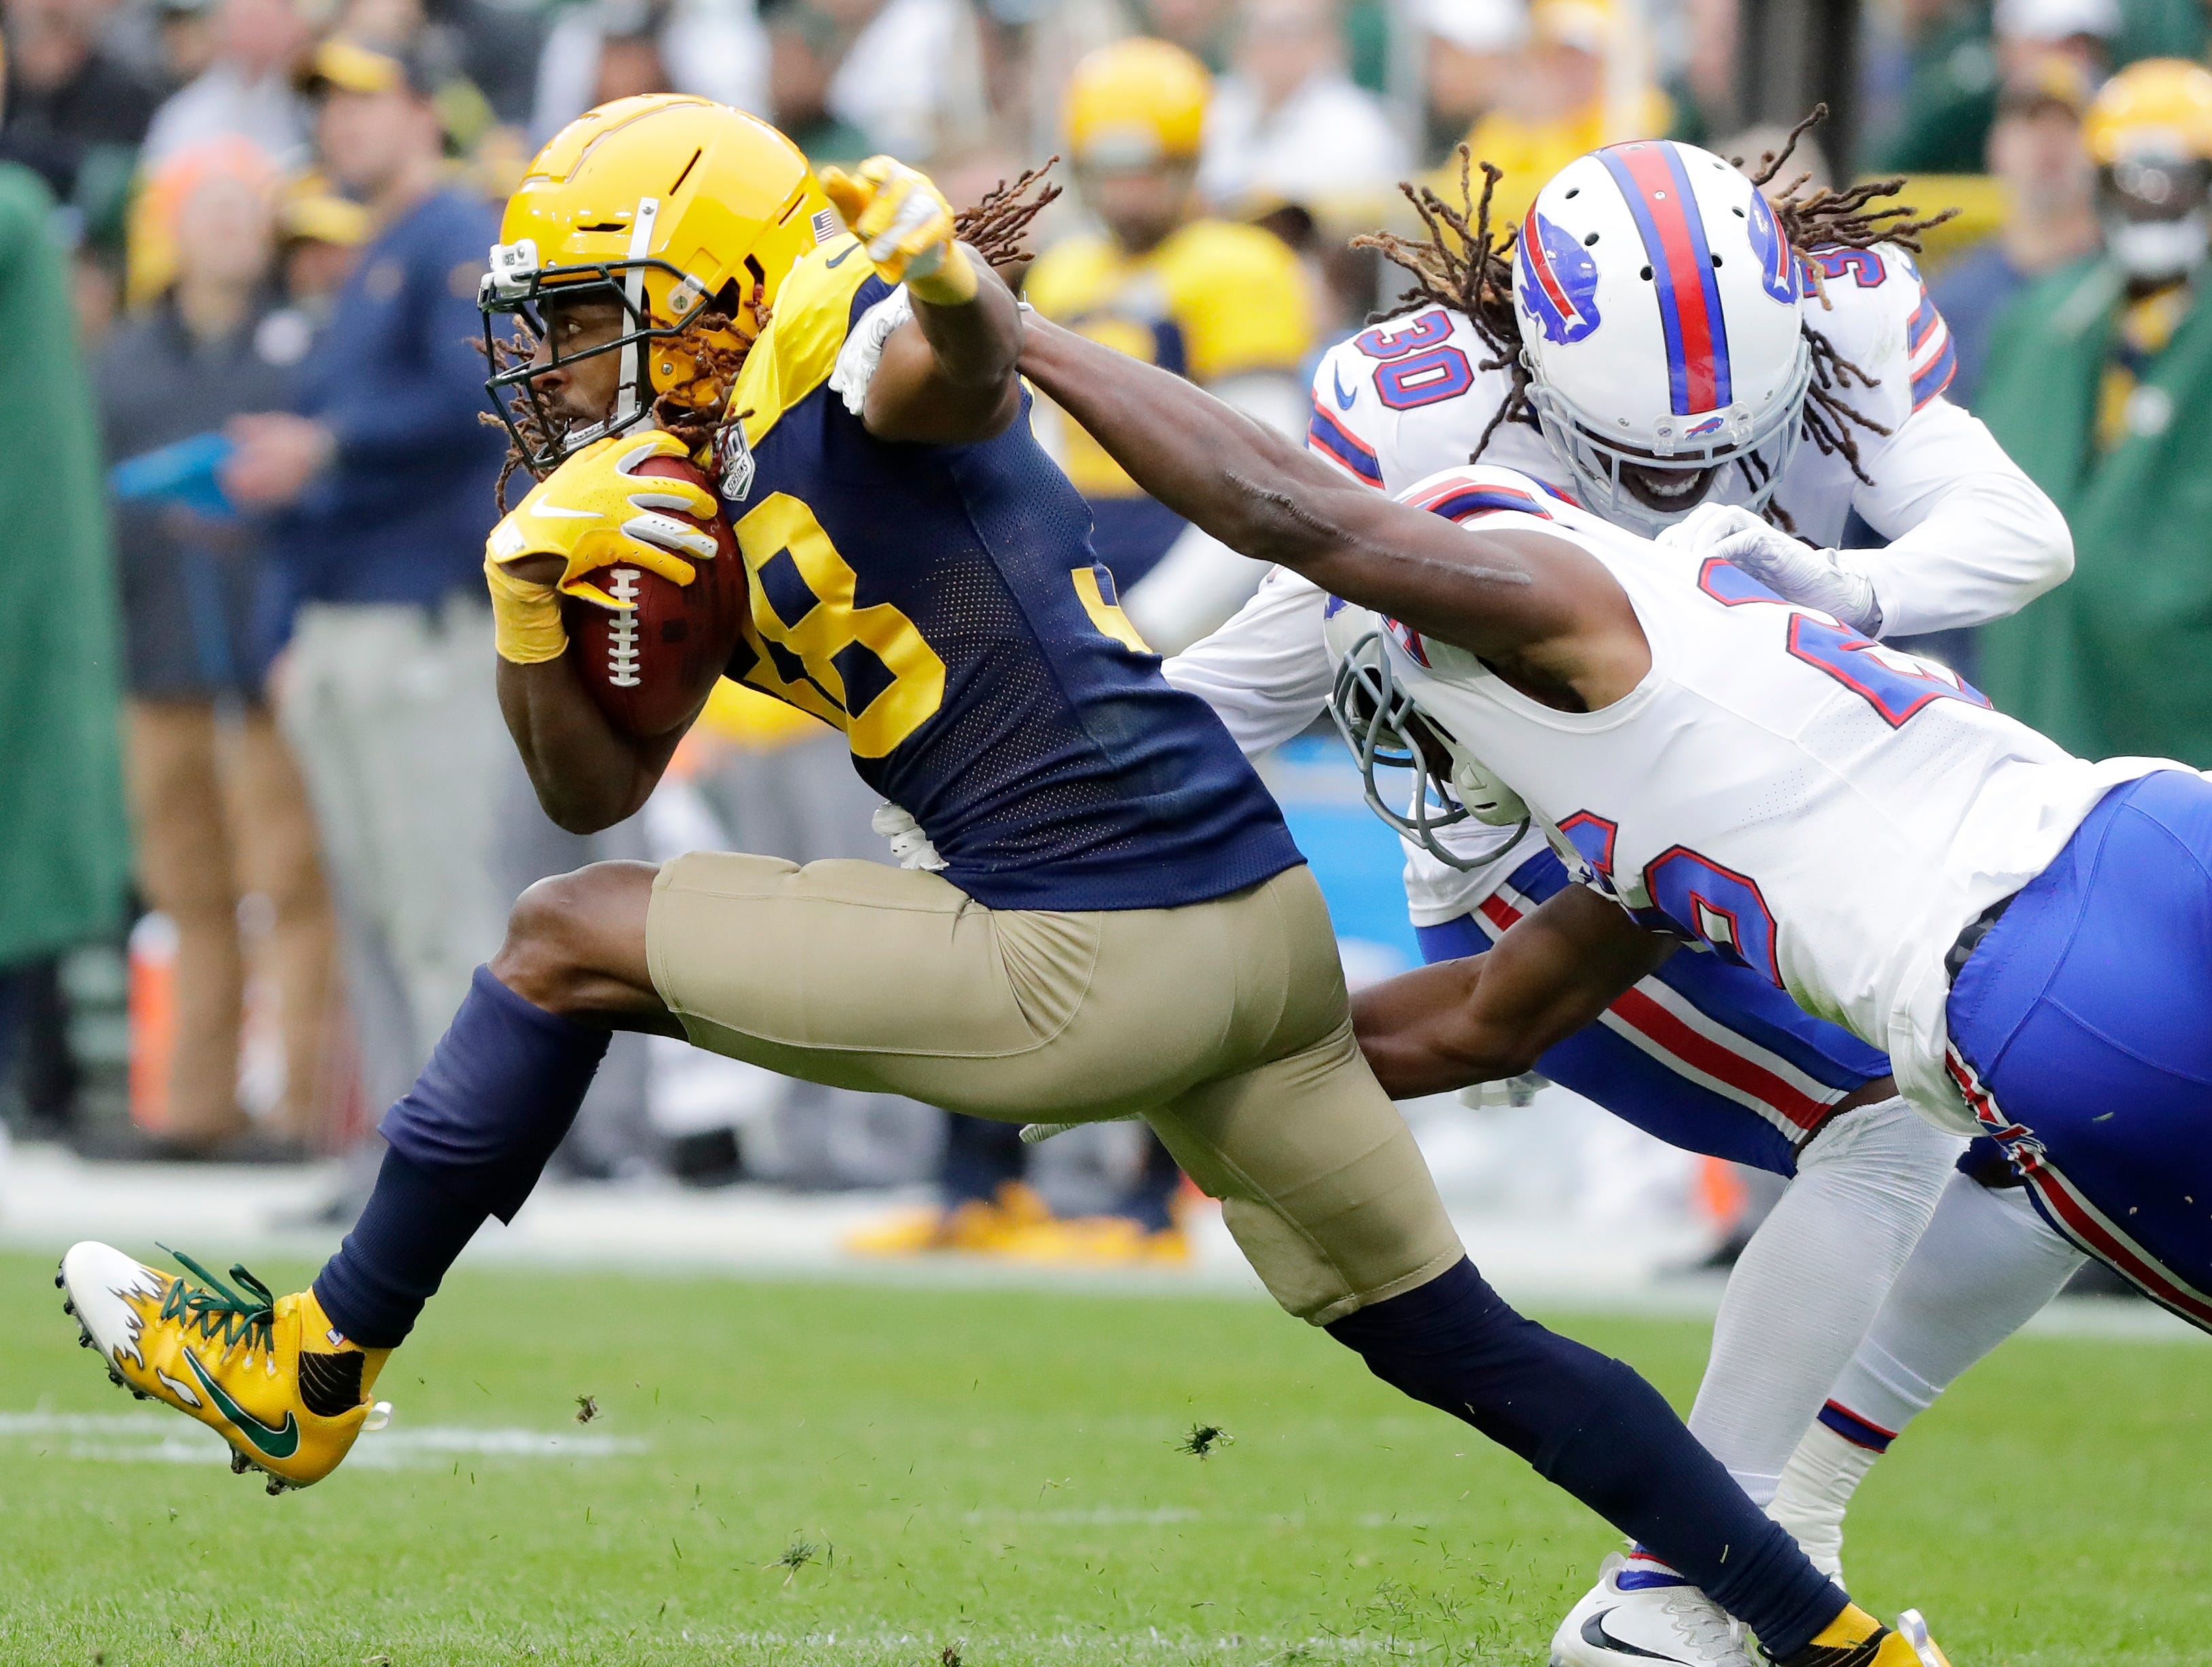 Green Bay Packers defensive back Tramon Williams (38) returns a punt against the Buffalo Bills in the third quarter at Lambeau Field on Sunday, September 30, 2018 in Green Bay, Wis.